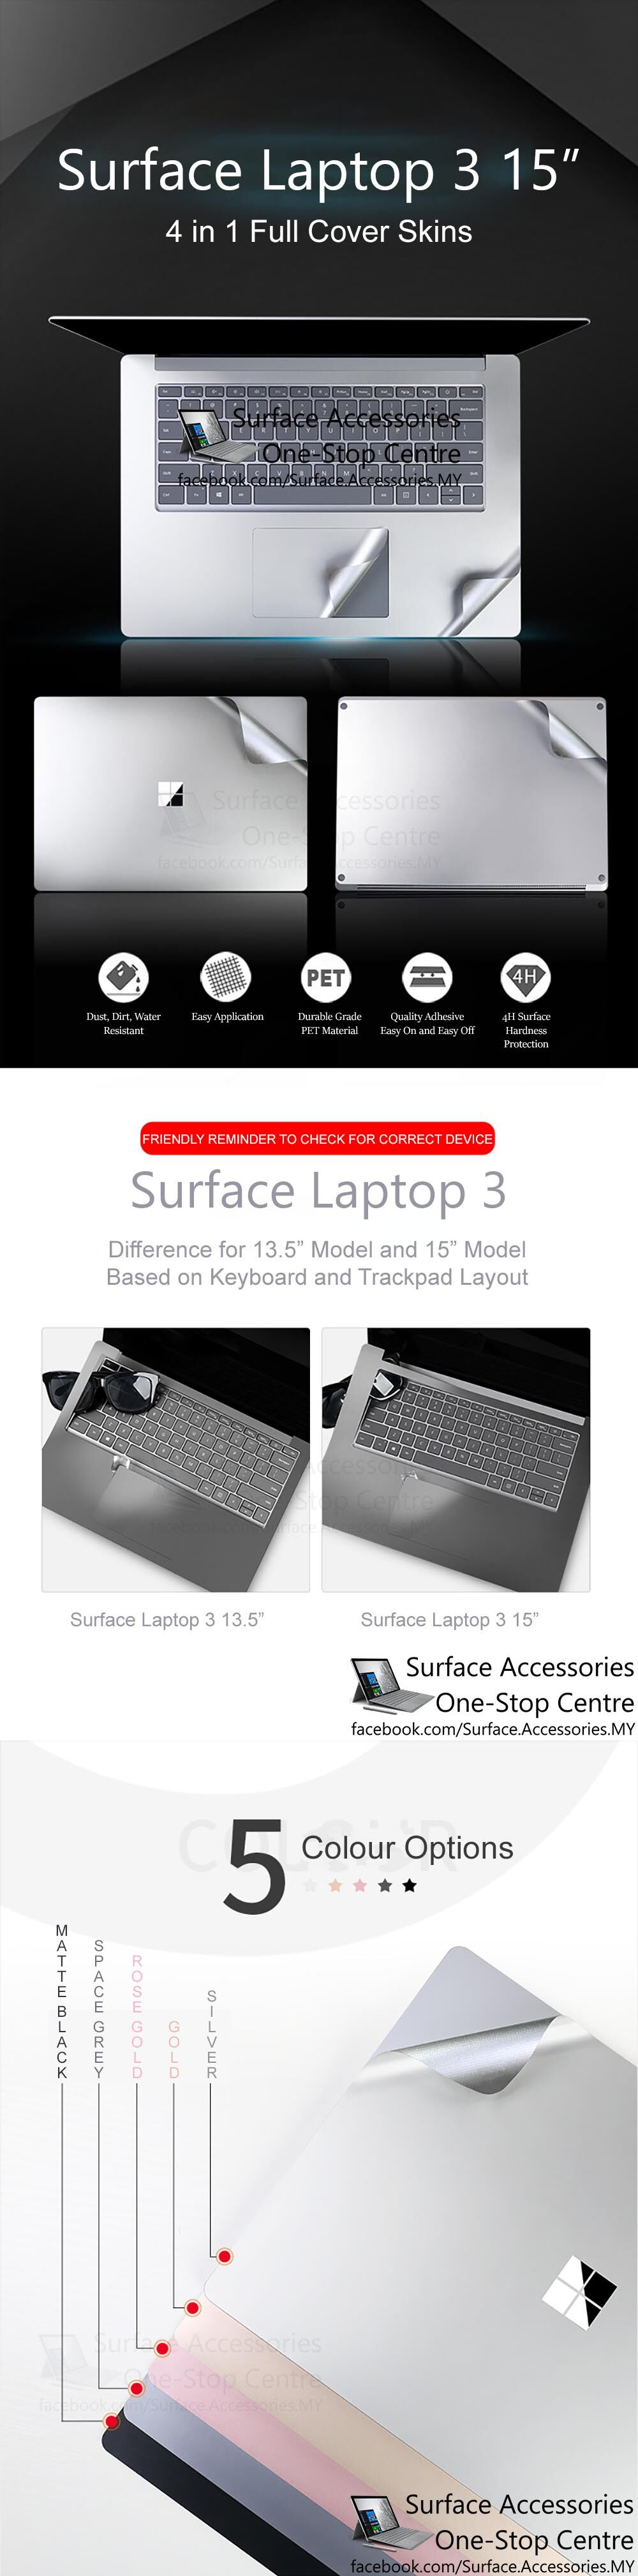 [MALAYSIA]Microsoft Surface Laptop 3 15 Skin Cover Protection Microsoft Surface Laptop 3 15 Wrap Microsoft Surface Laptop 3 15 Skin Microsoft Surface Laptop 3 15 Vinyl Wrap Microsoft Surface Laptop 3 15 Decal